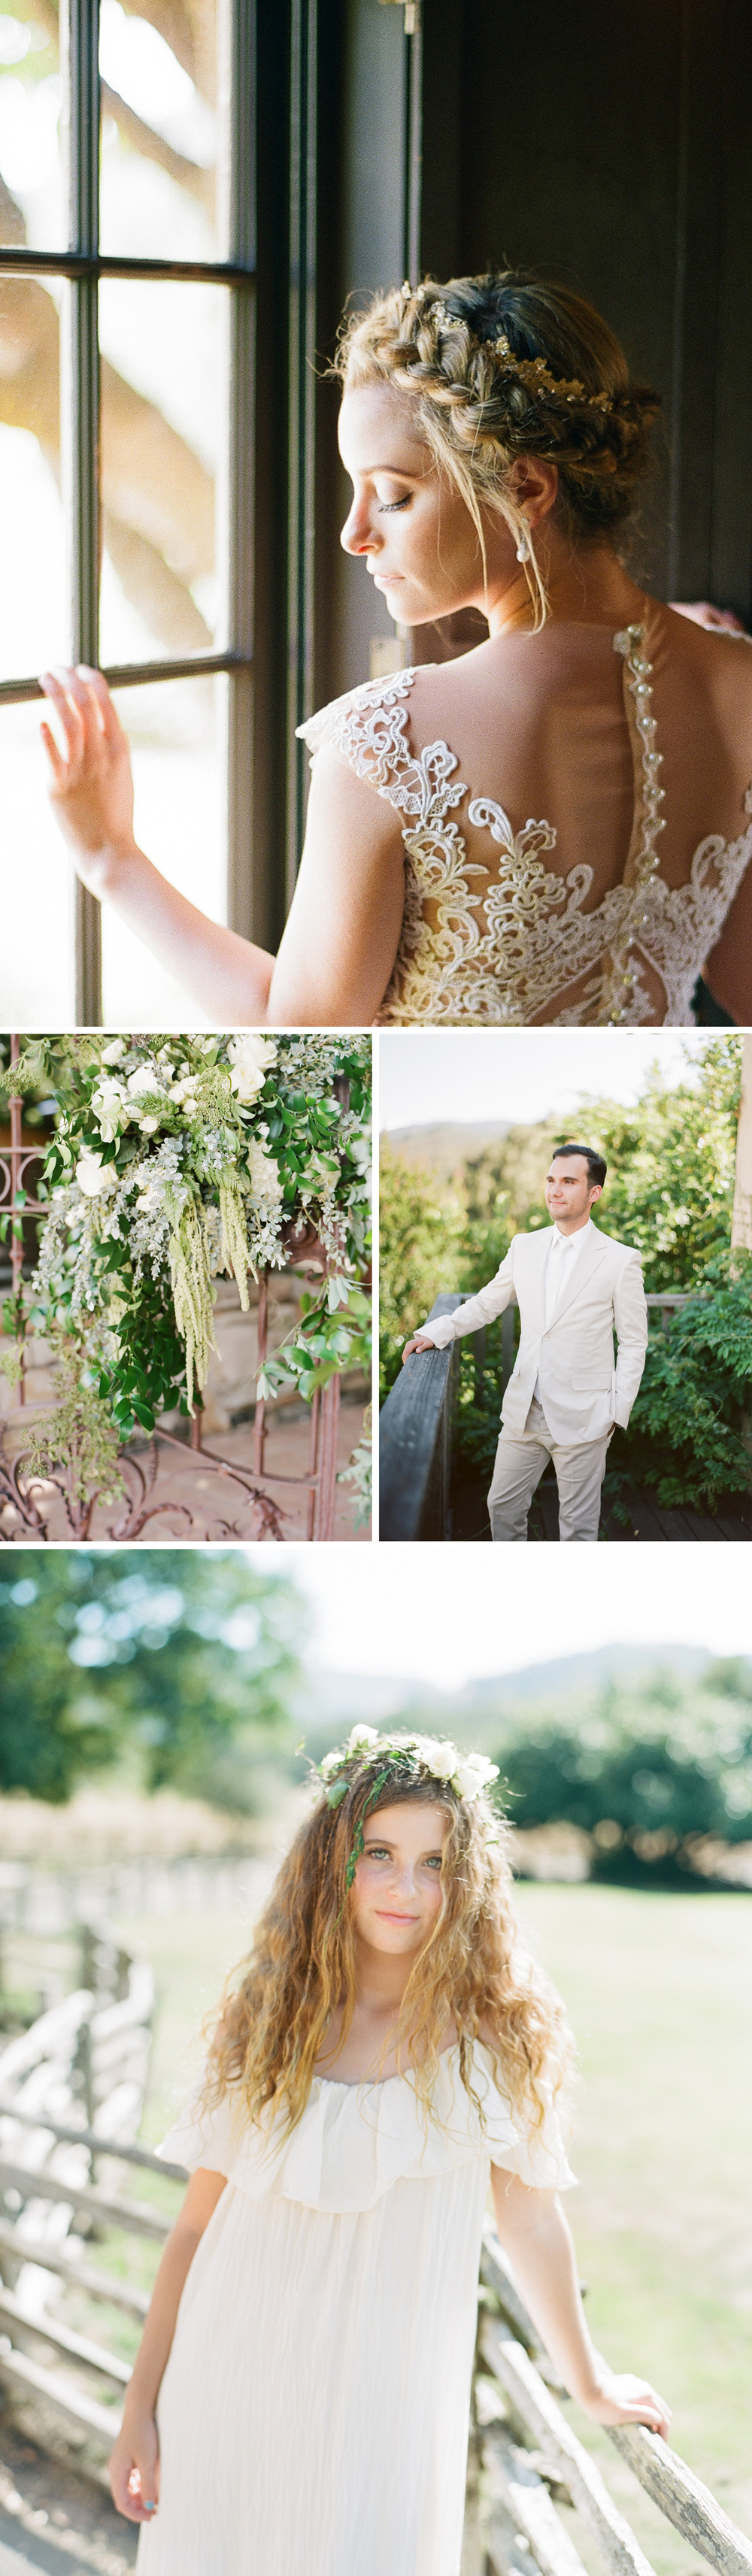 The bride stands at the window with a gorgeous crown of braids, floral decorations hang from a wrought iron gate, a dreamy flower girl stands in a pasture; photos by Sylvie Gil